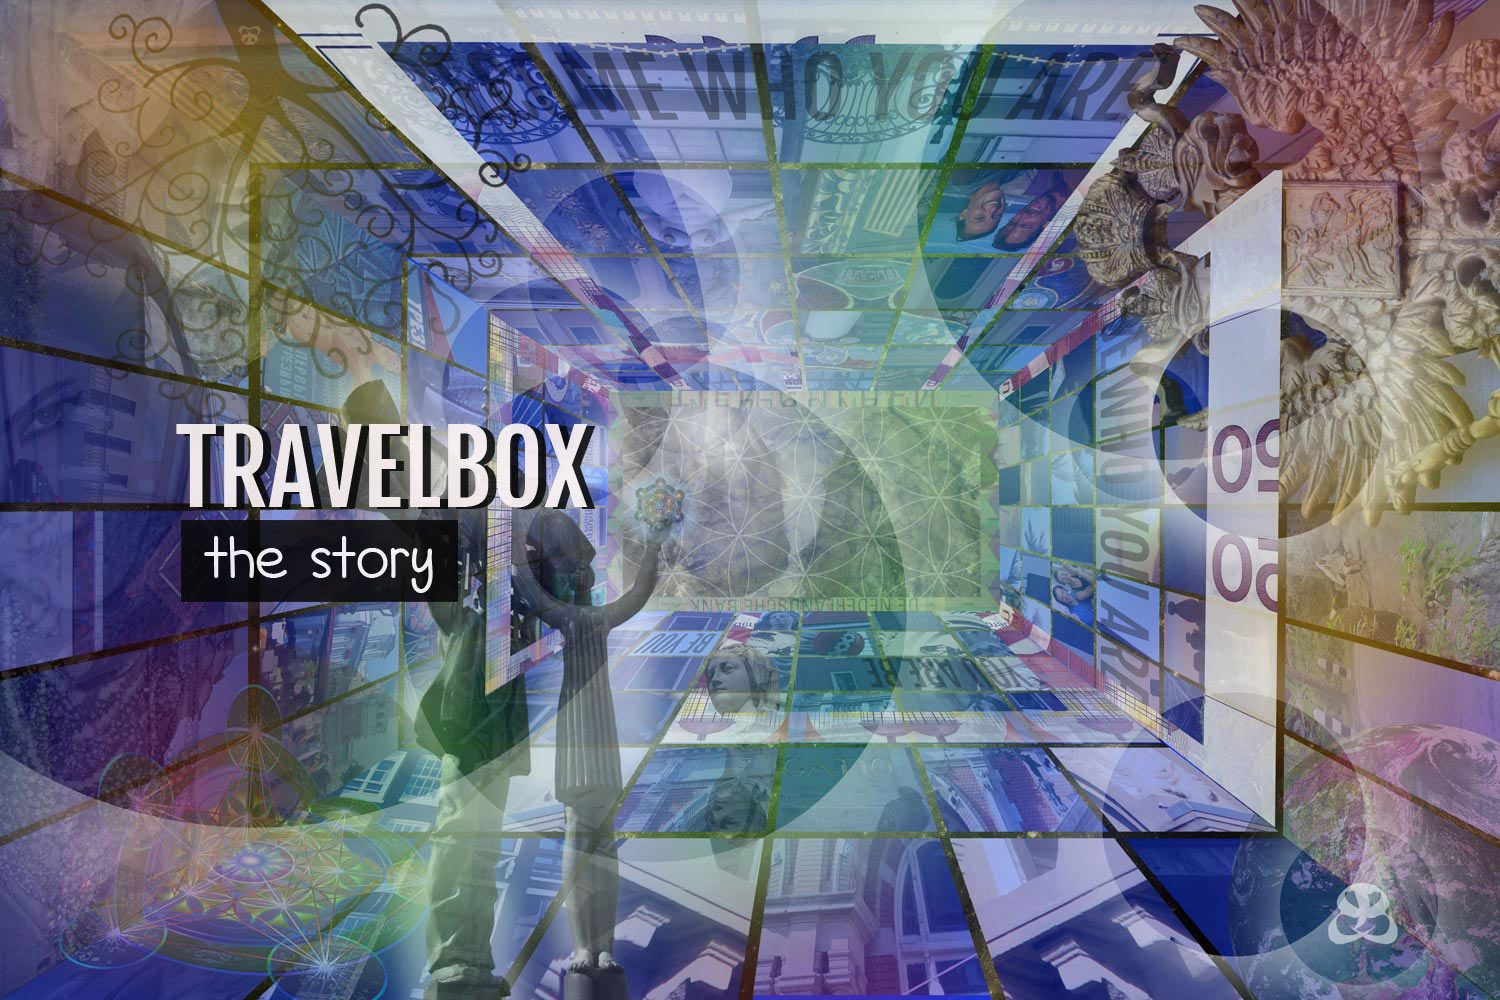 DIGITAL ART AMSTERDAM - Art Story TRAVELBOX